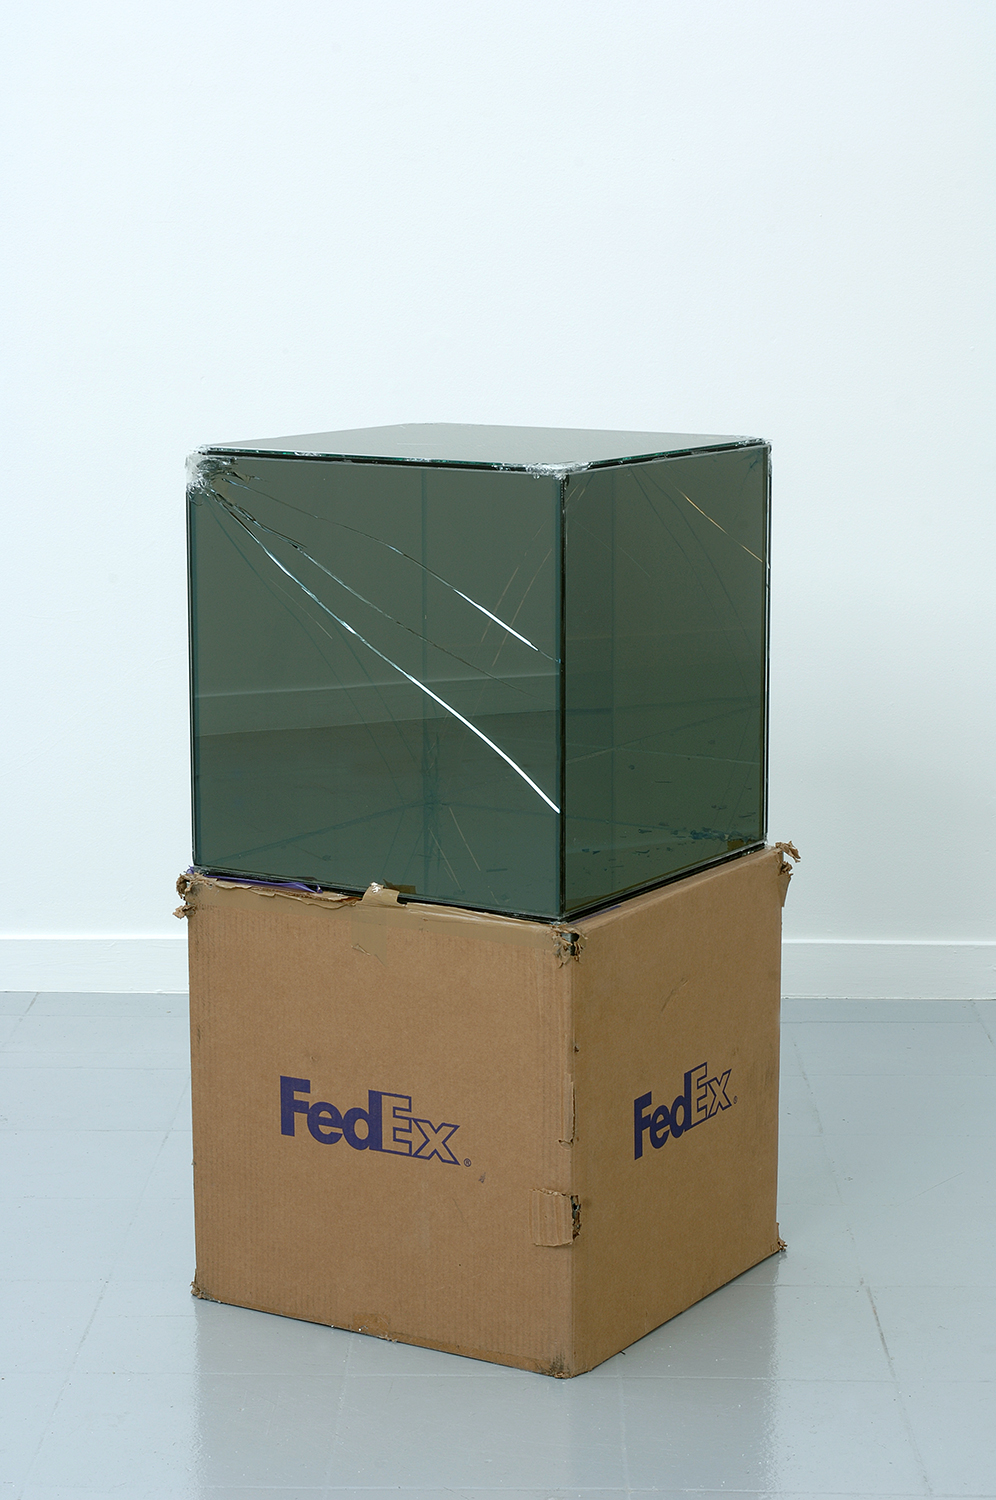 FedEx® Large Kraft Box  © 2005 FEDEX 330508 REV 10/05 SSCC, International Priority, Los Angeles–Brussels trk#865282057953, October 27–30, 2008, International Priority, Brussels–Los Angeles trk#866071746385, December 8–9, 2008   2008–  Laminated mirropane, FedEx shipping box, accrued FedEx shipping and tracking labels, silicone, metal, and tape  20 x 20 x 20 inches   FedEx Glass Works, 2007–    Industrial Pictures, 2008